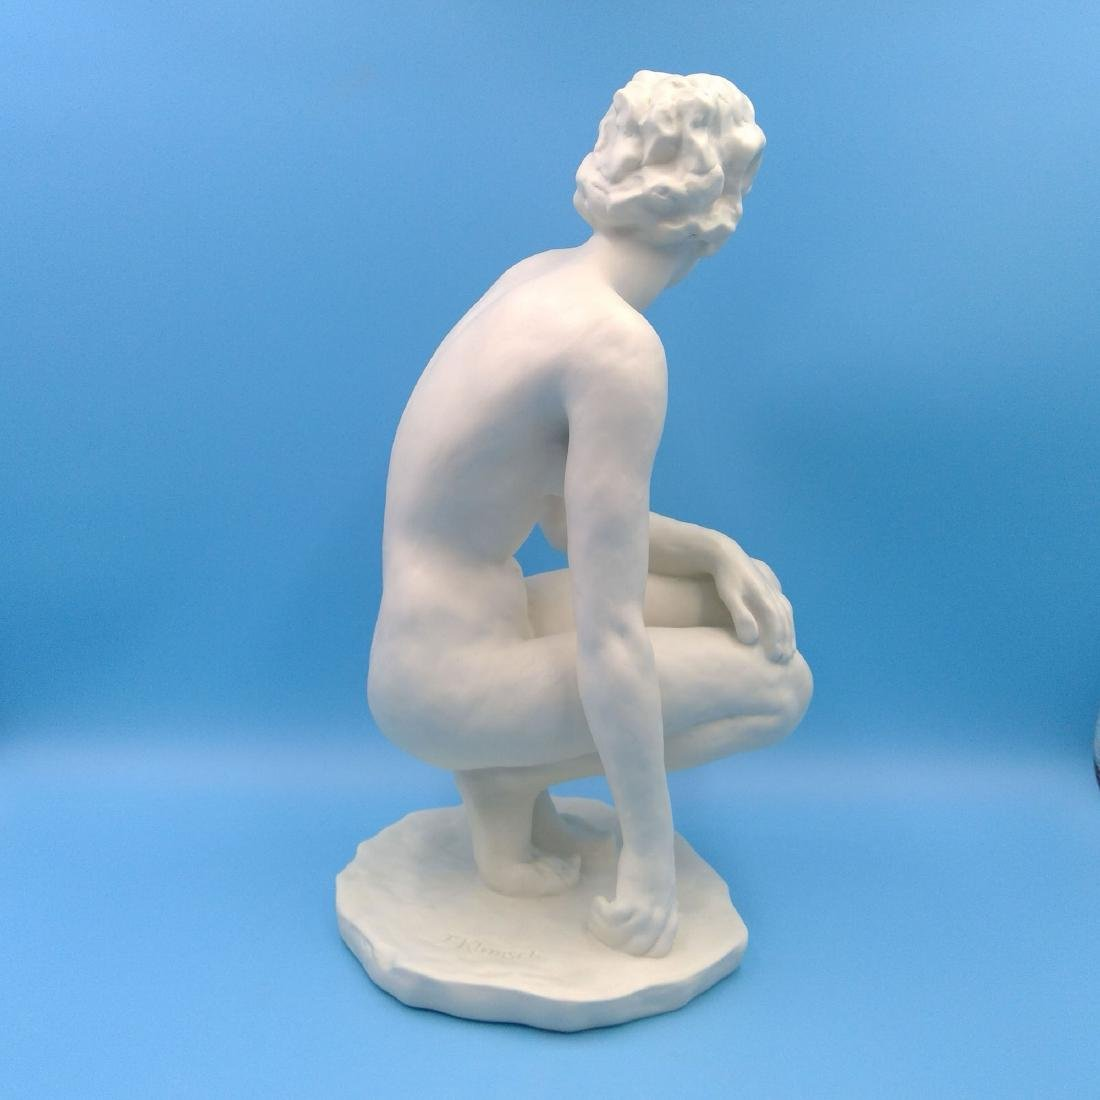 ROSENTHAL NUDE SCULPTURE LARGE FIGURINE - 4